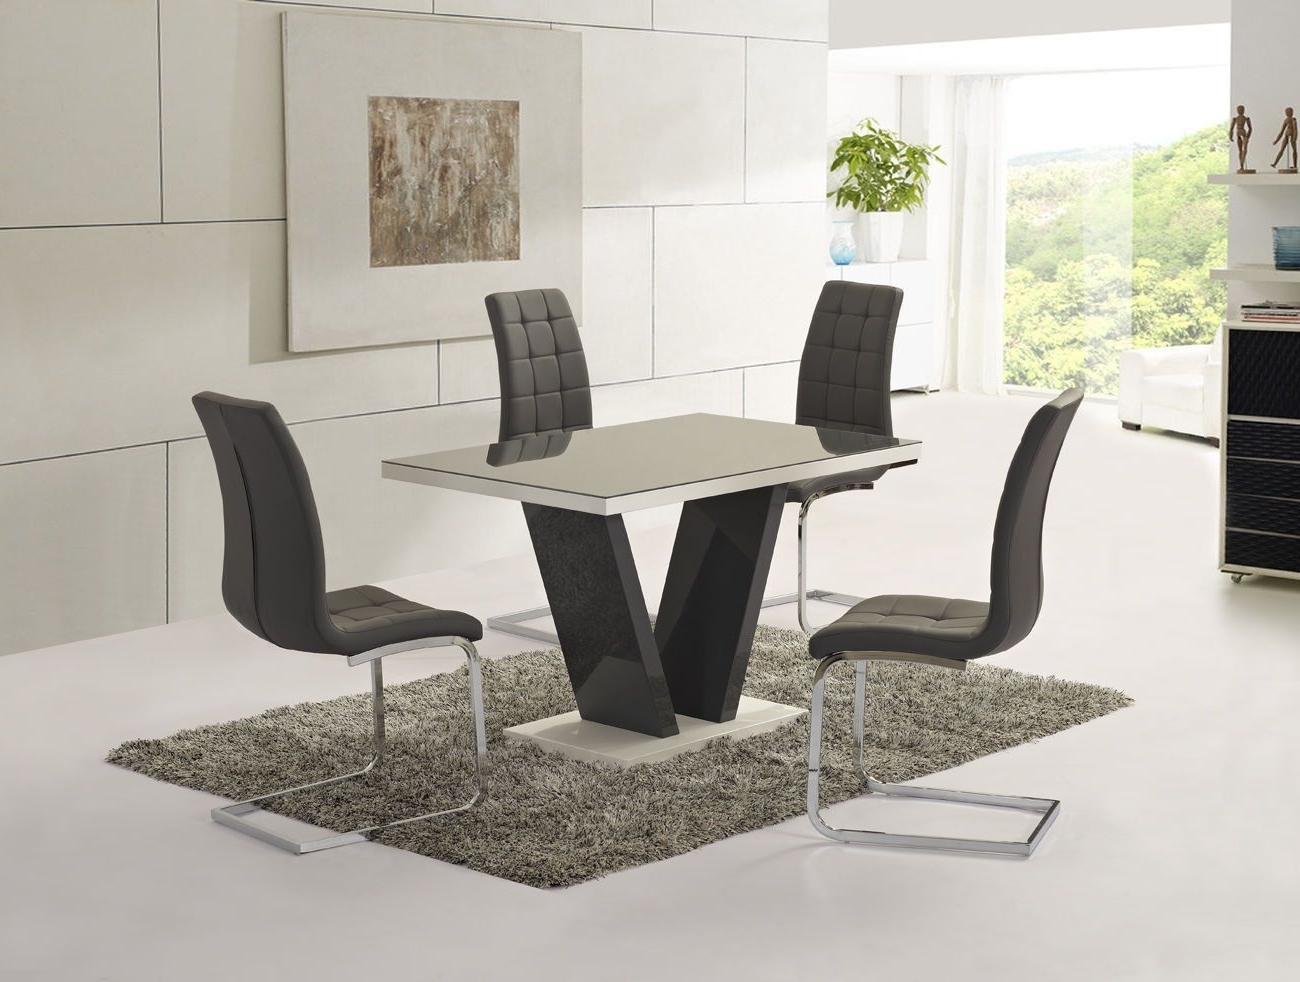 Preferred 2019 White High Gloss Dining Table 6 Chairs – Modern Style Furniture With Regard To High Gloss Dining Tables Sets (Gallery 23 of 25)